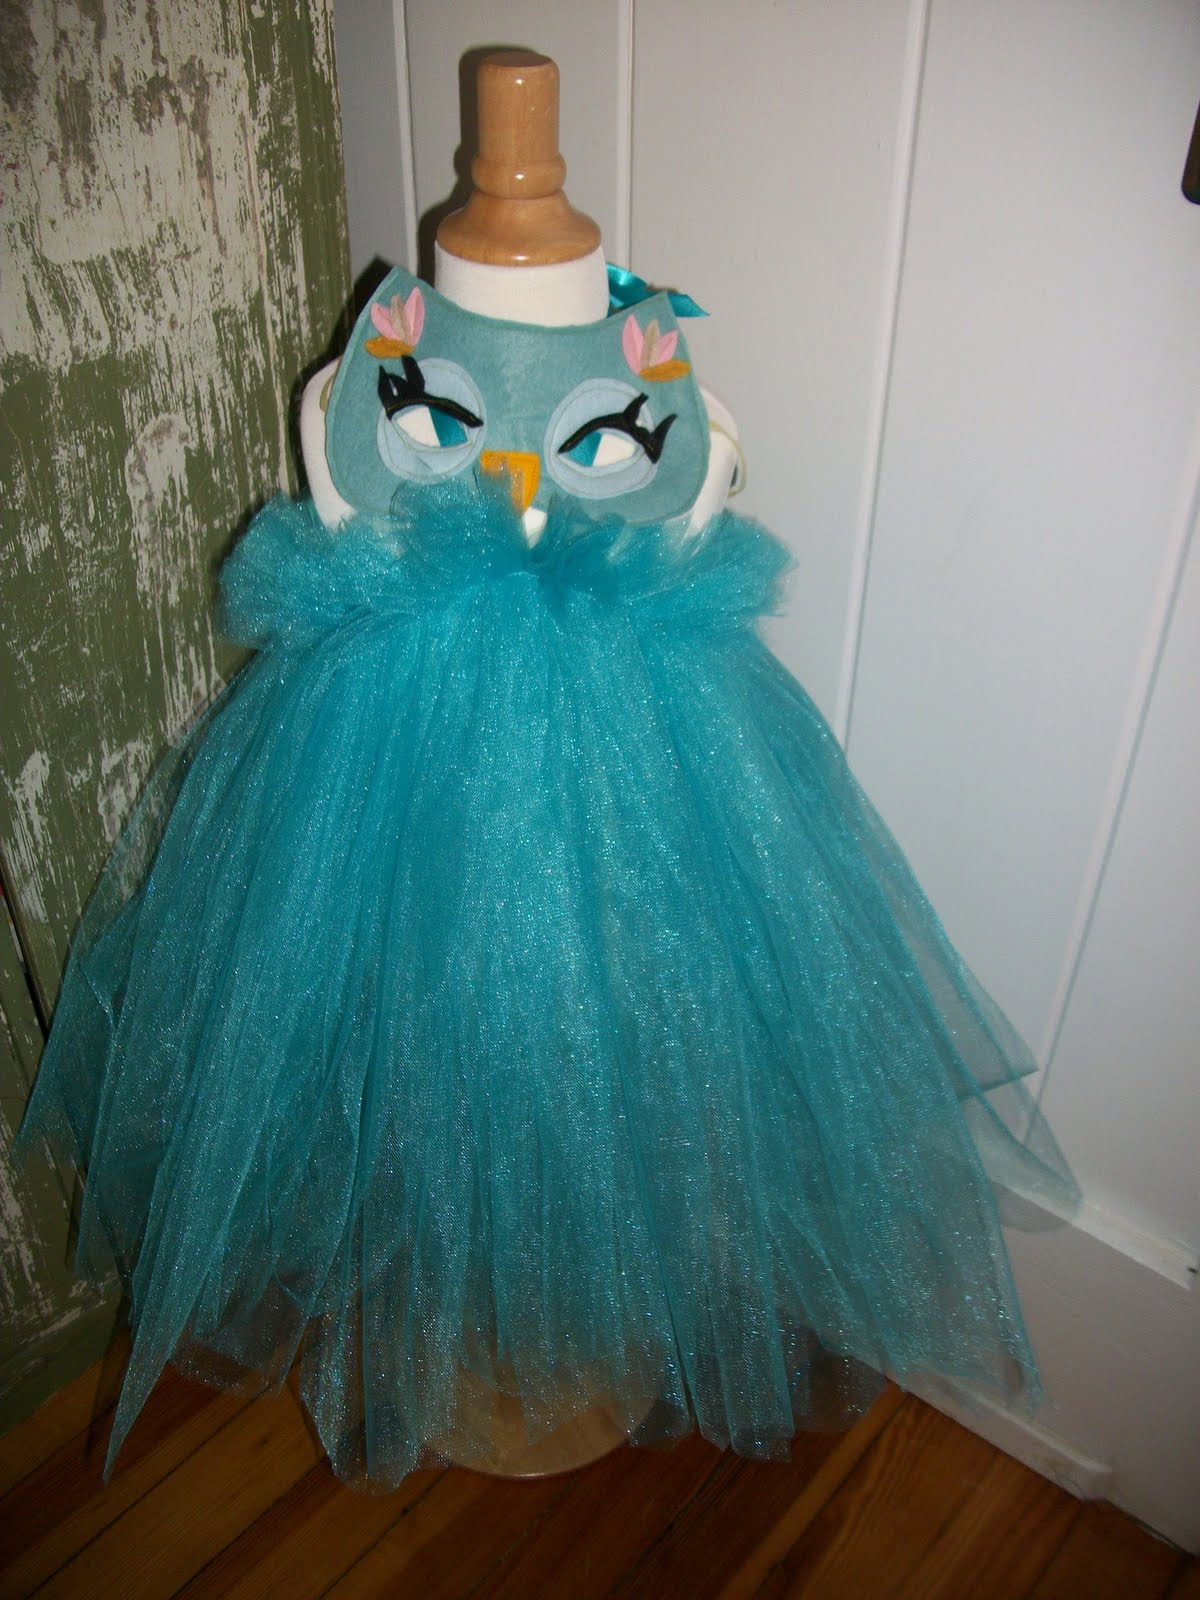 You can purchase these on my etsy site at .shoppe3130.etsy.com OR & Taking Orders for Tutu Dress Costumes | Shoppe 3130 Girl